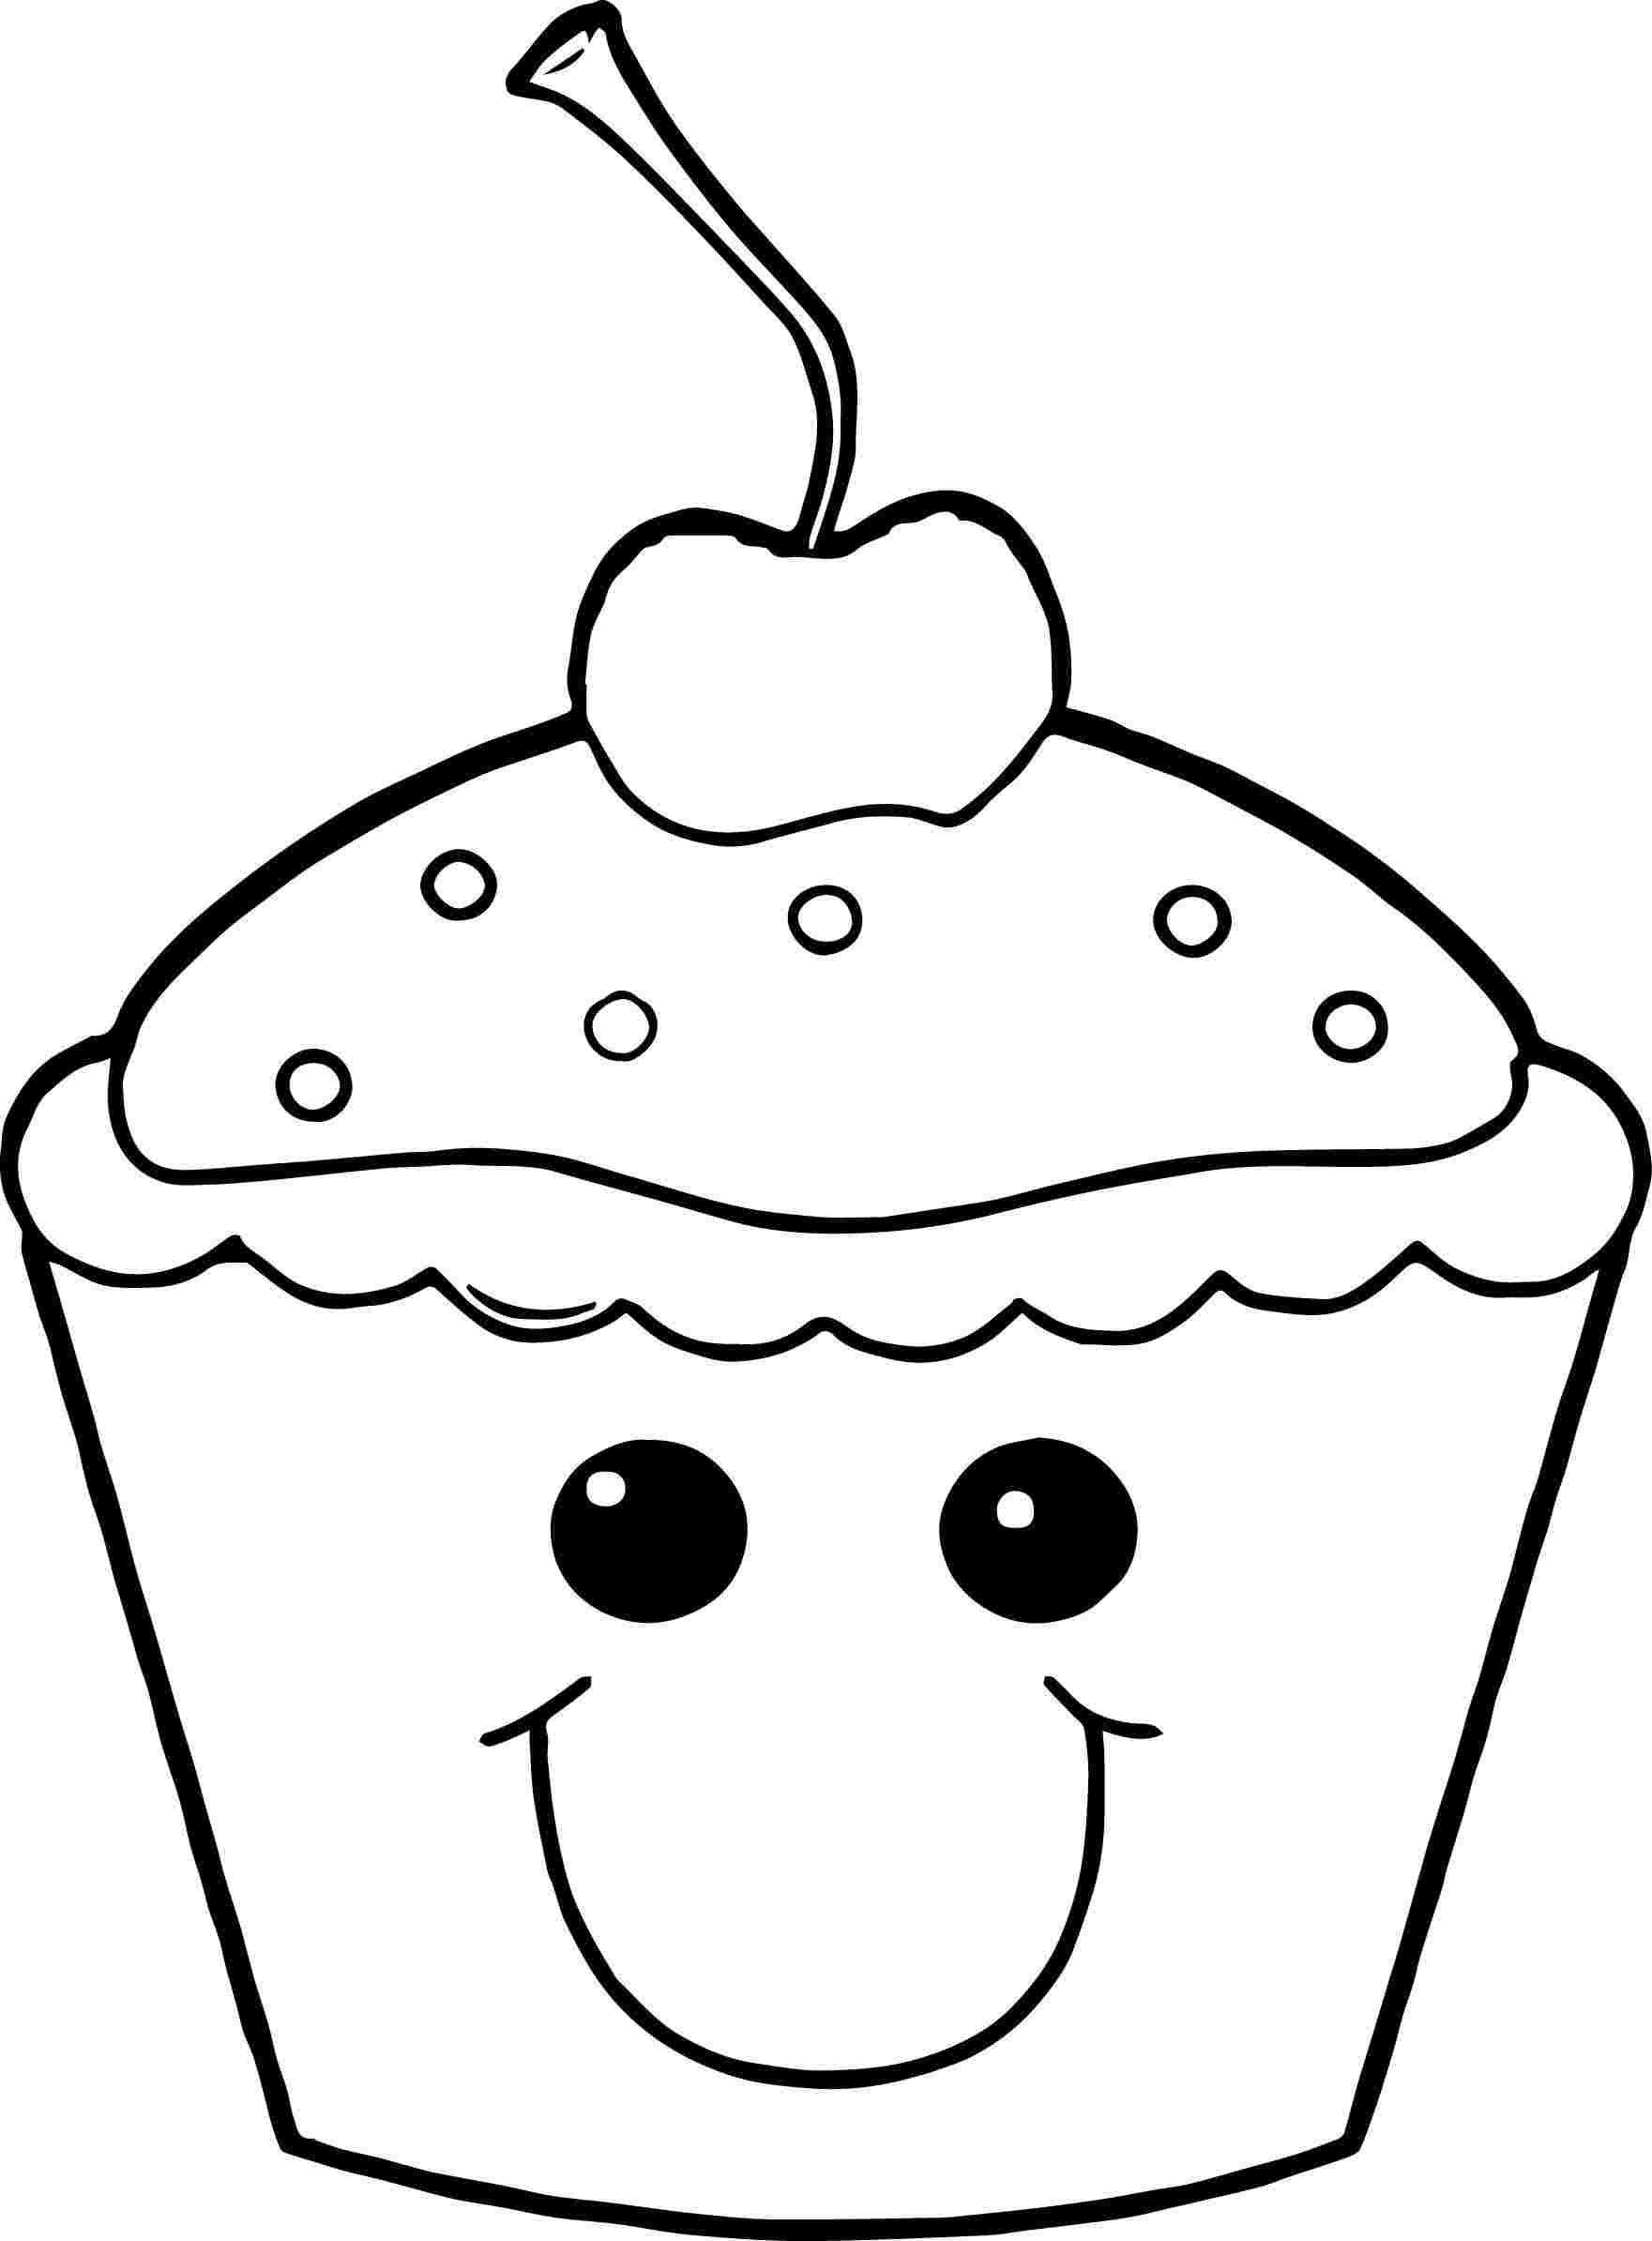 Kawaii Cupcake Coloring Pages Paginas Para Colorear Para Ninos Paginas Para Colorear Pastelitos De Dibujos Animados